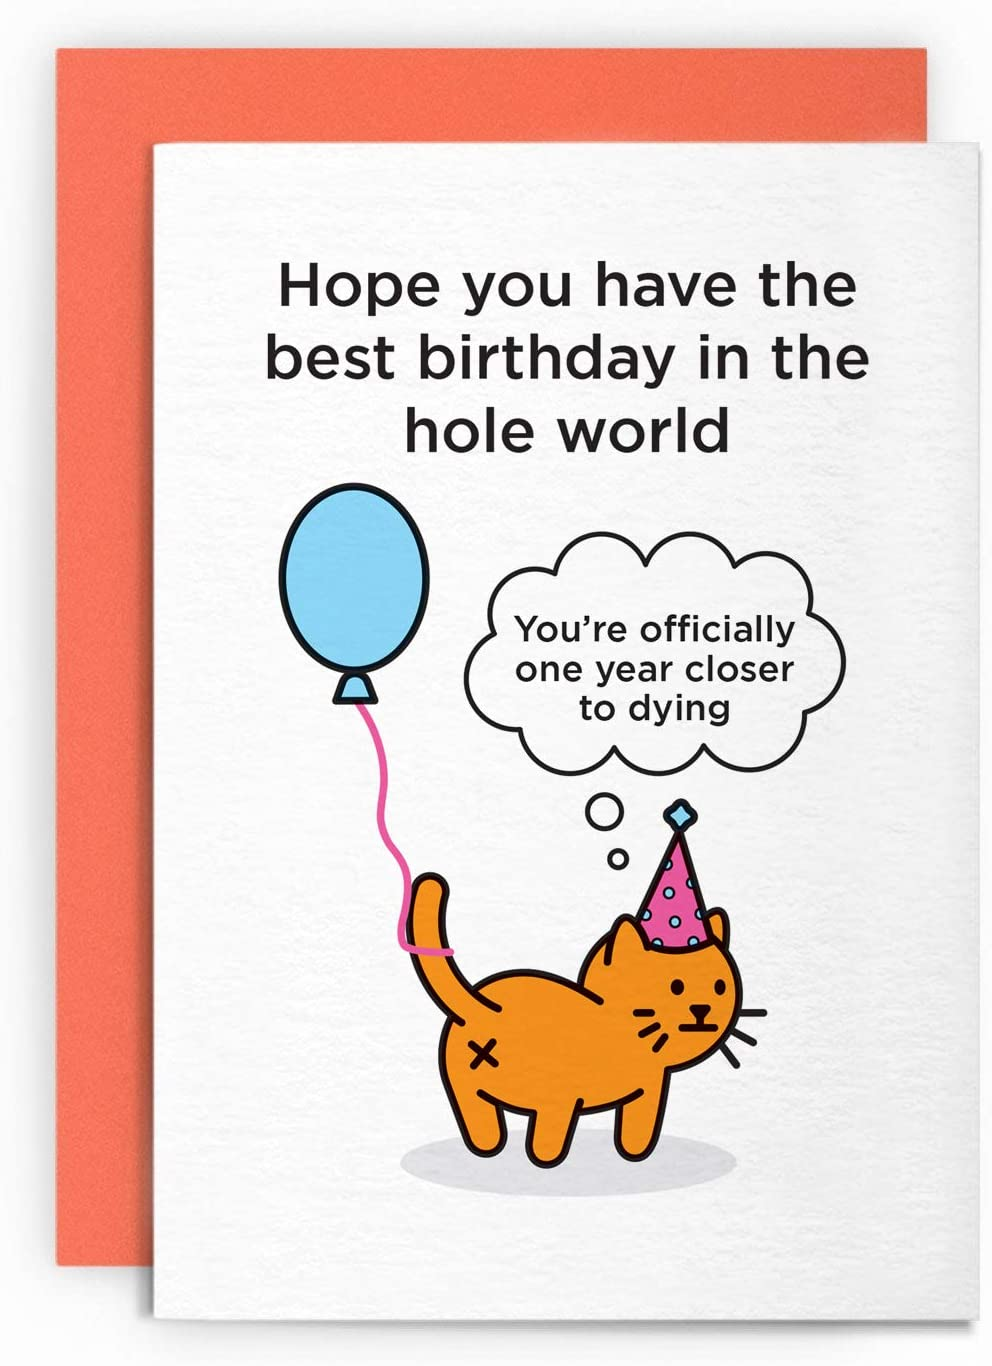 Birthday Card Funny Cat Animal Husband Wife Boy Friend Girl Friend Mum Dad Greeting For Him Her Joke Lol Pun Officially One Year Closer To Dying Amazon Co Uk Office Products